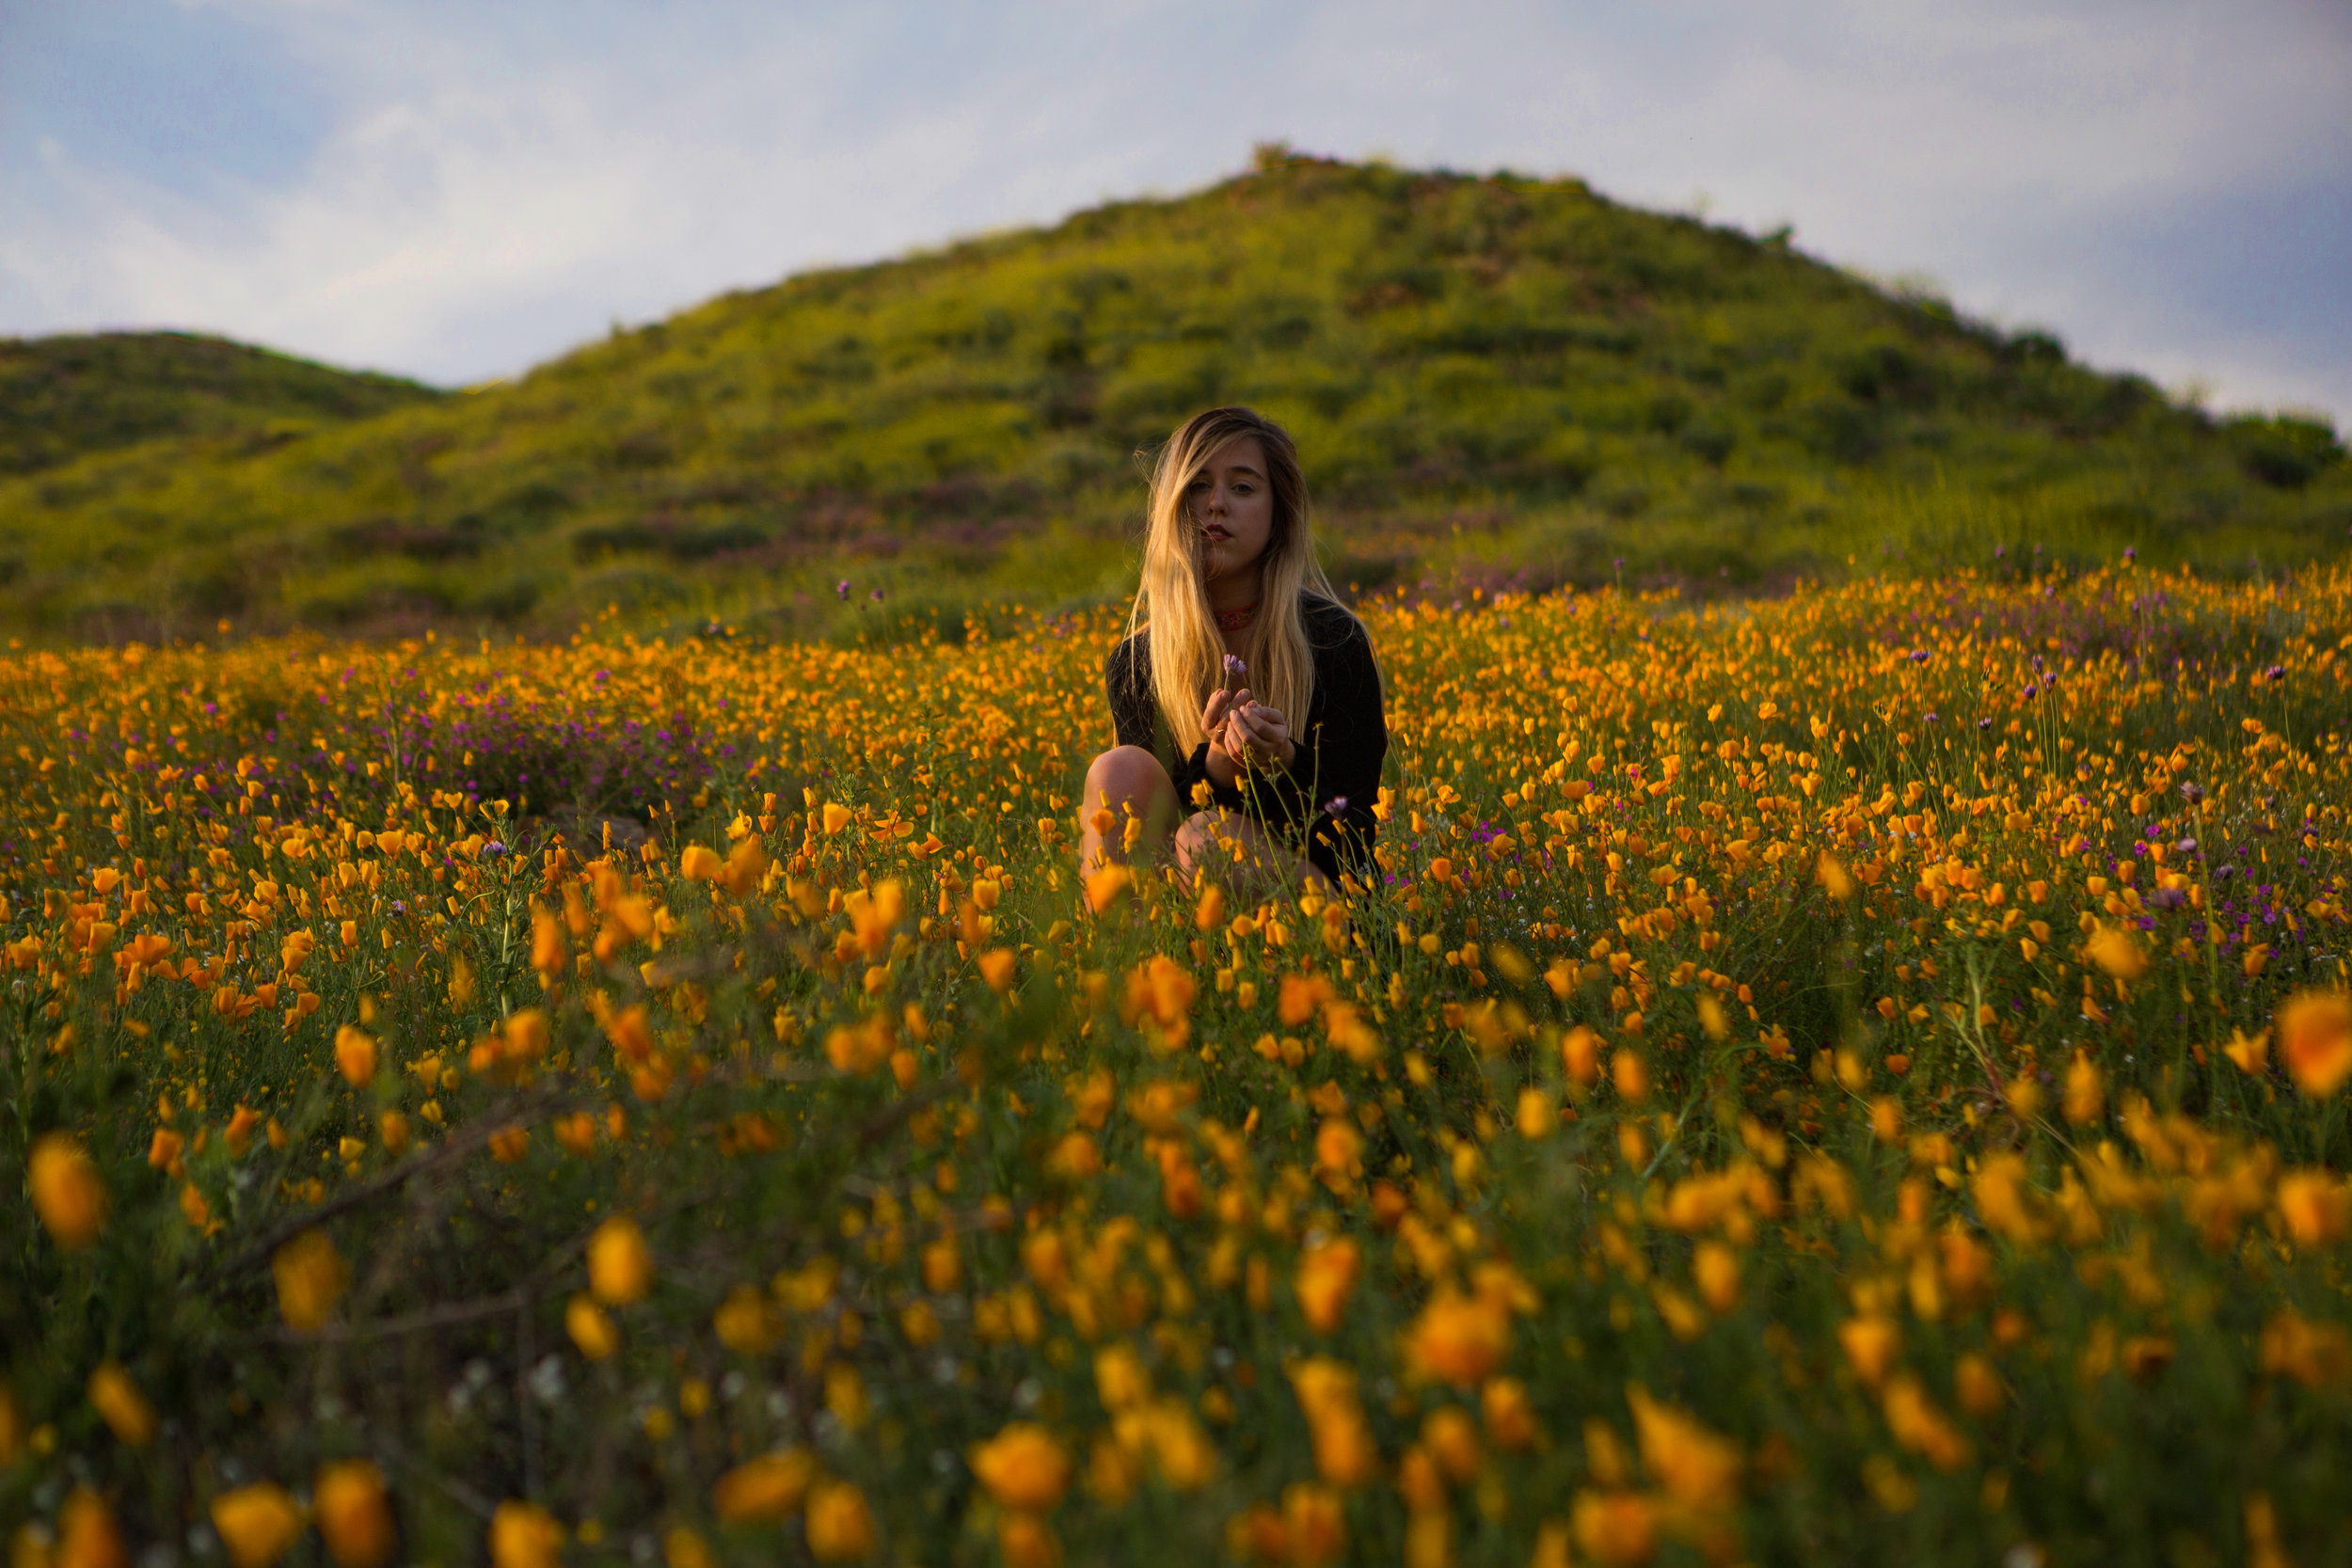 AstroBandit_Superbloom_CaliforniaPoppies_LackOfColor_10.jpg